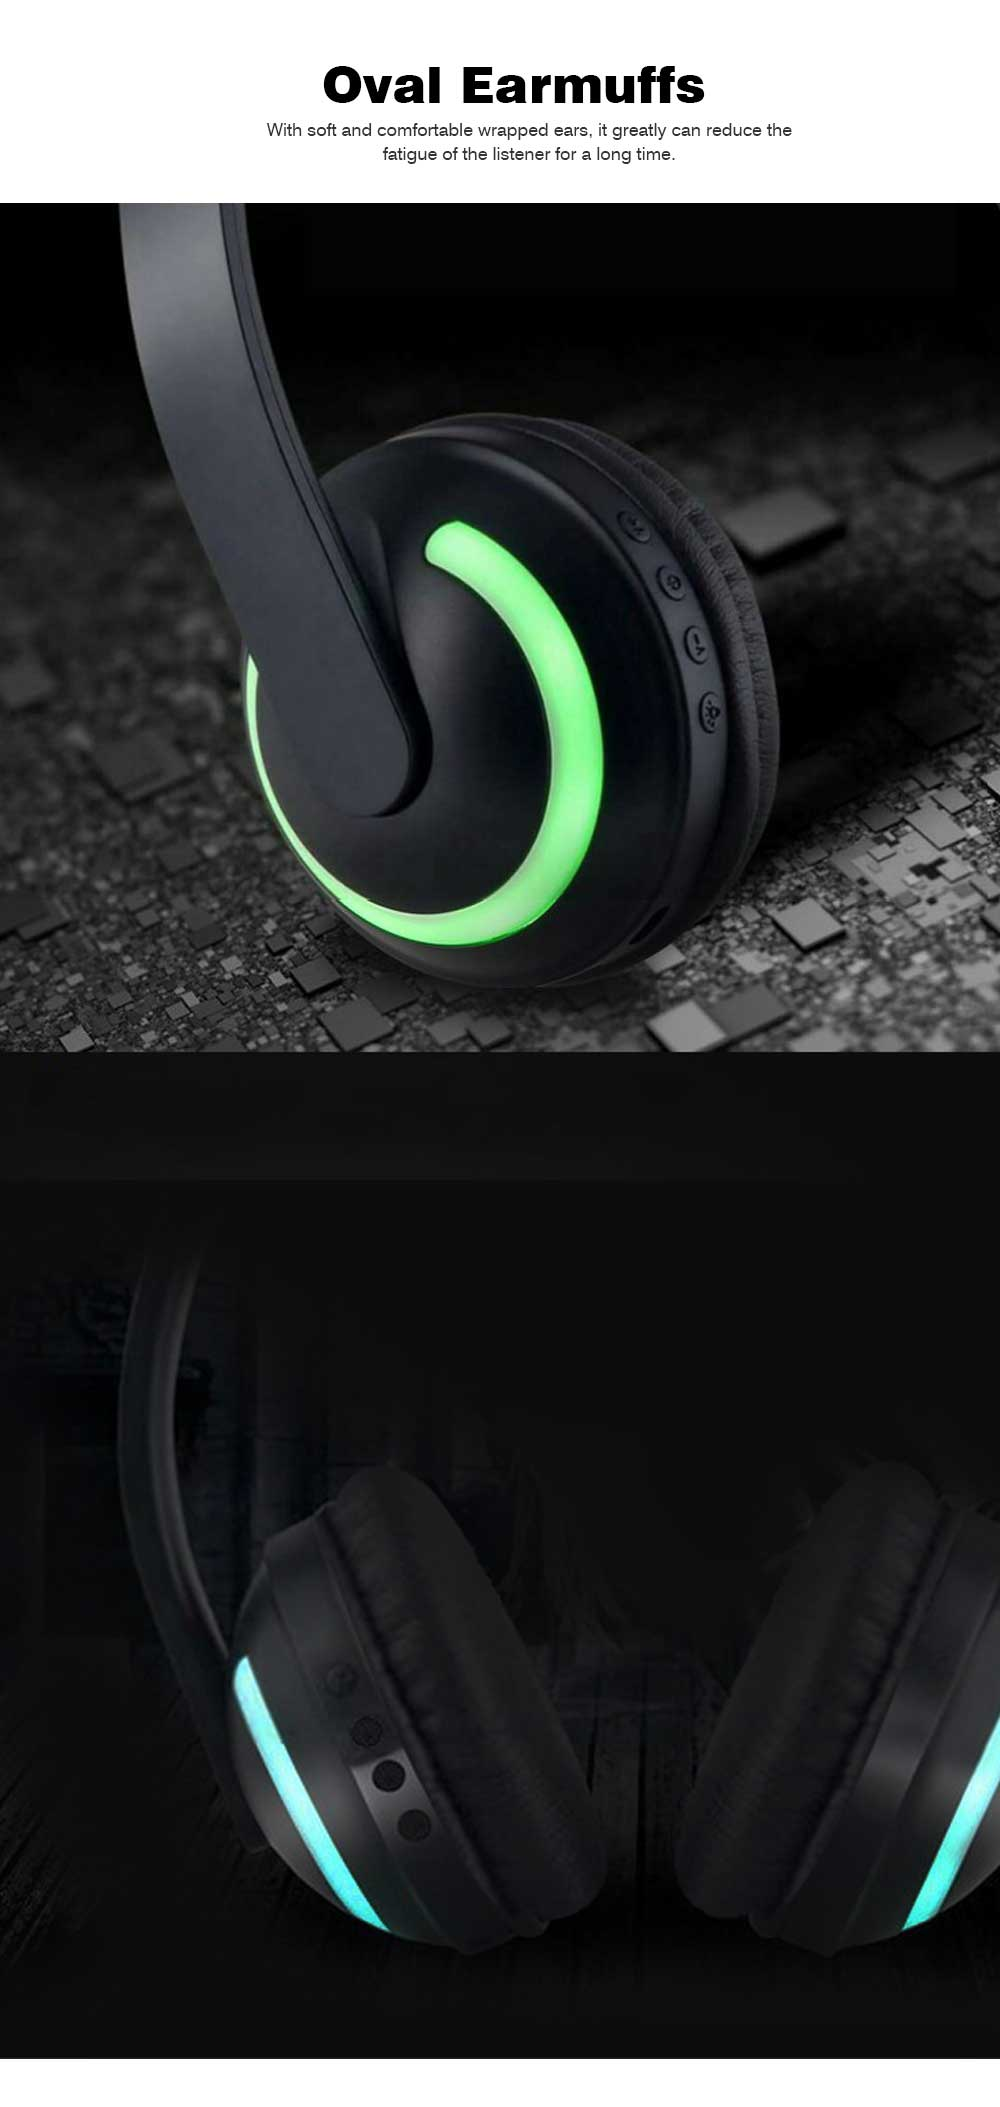 New Cat Ear Bluetooth Headset, Head-mounted Bluetooth Headset for Boys, Wireless Game Headphones 4